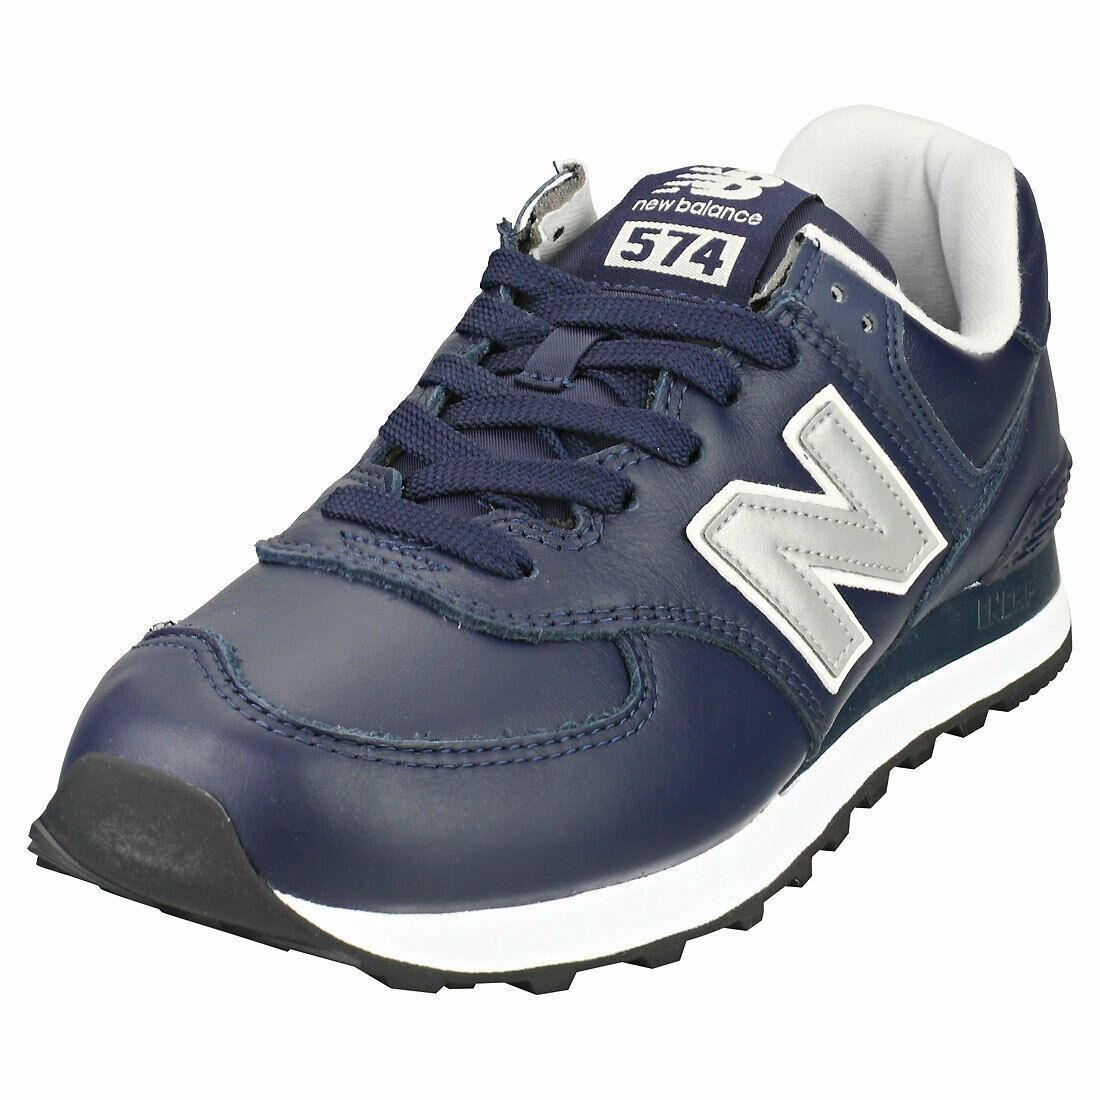 New Balance 574 Mens Navy Silver Casual Trainers - 8 UK